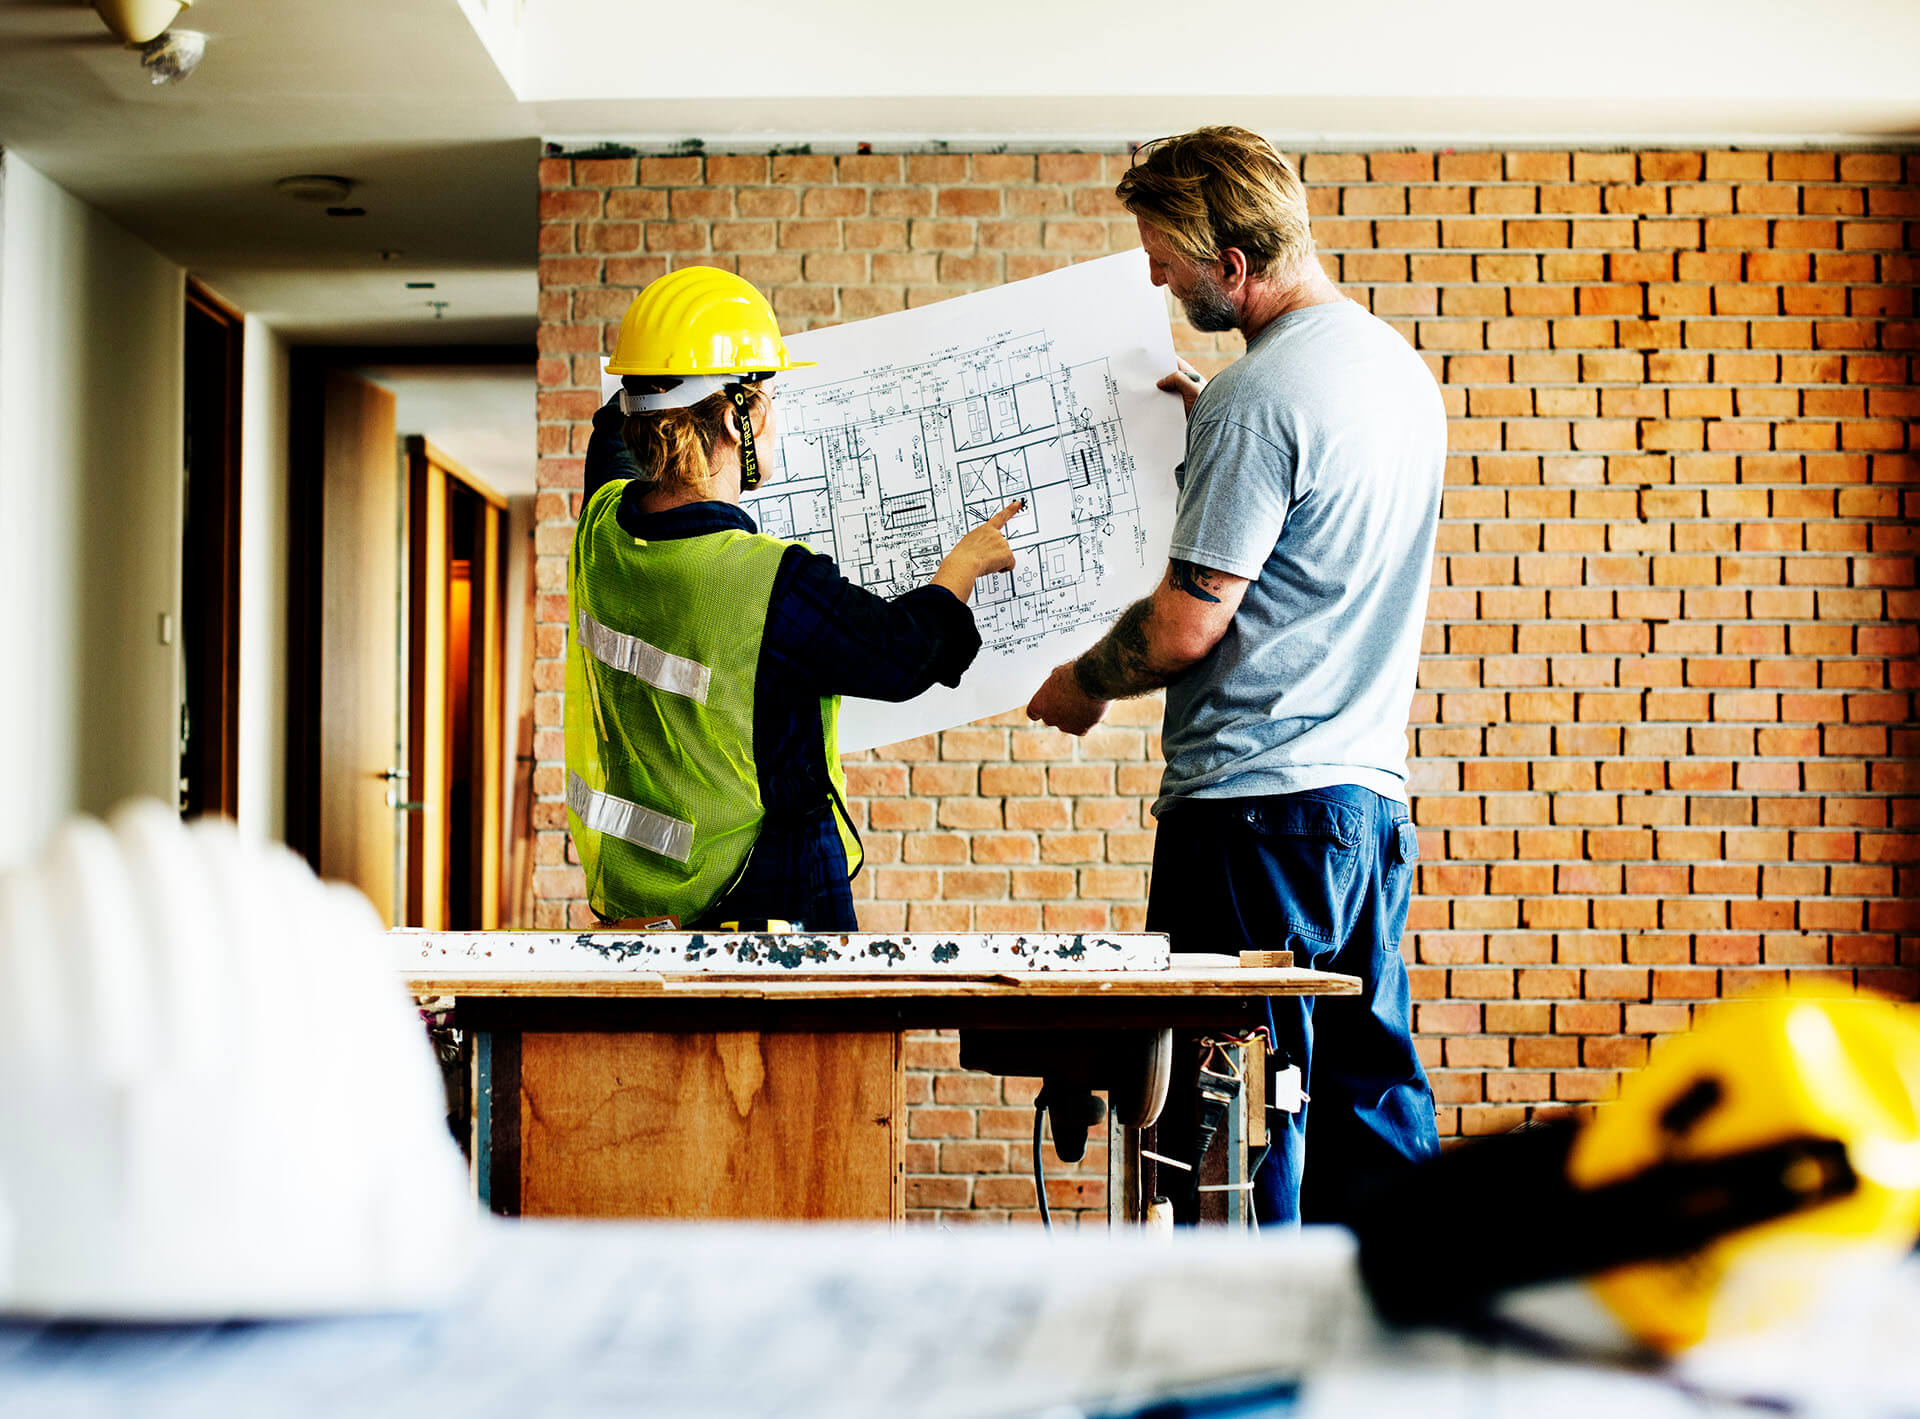 construction-team-working-on-a-blueprint-PTWBMYW-1